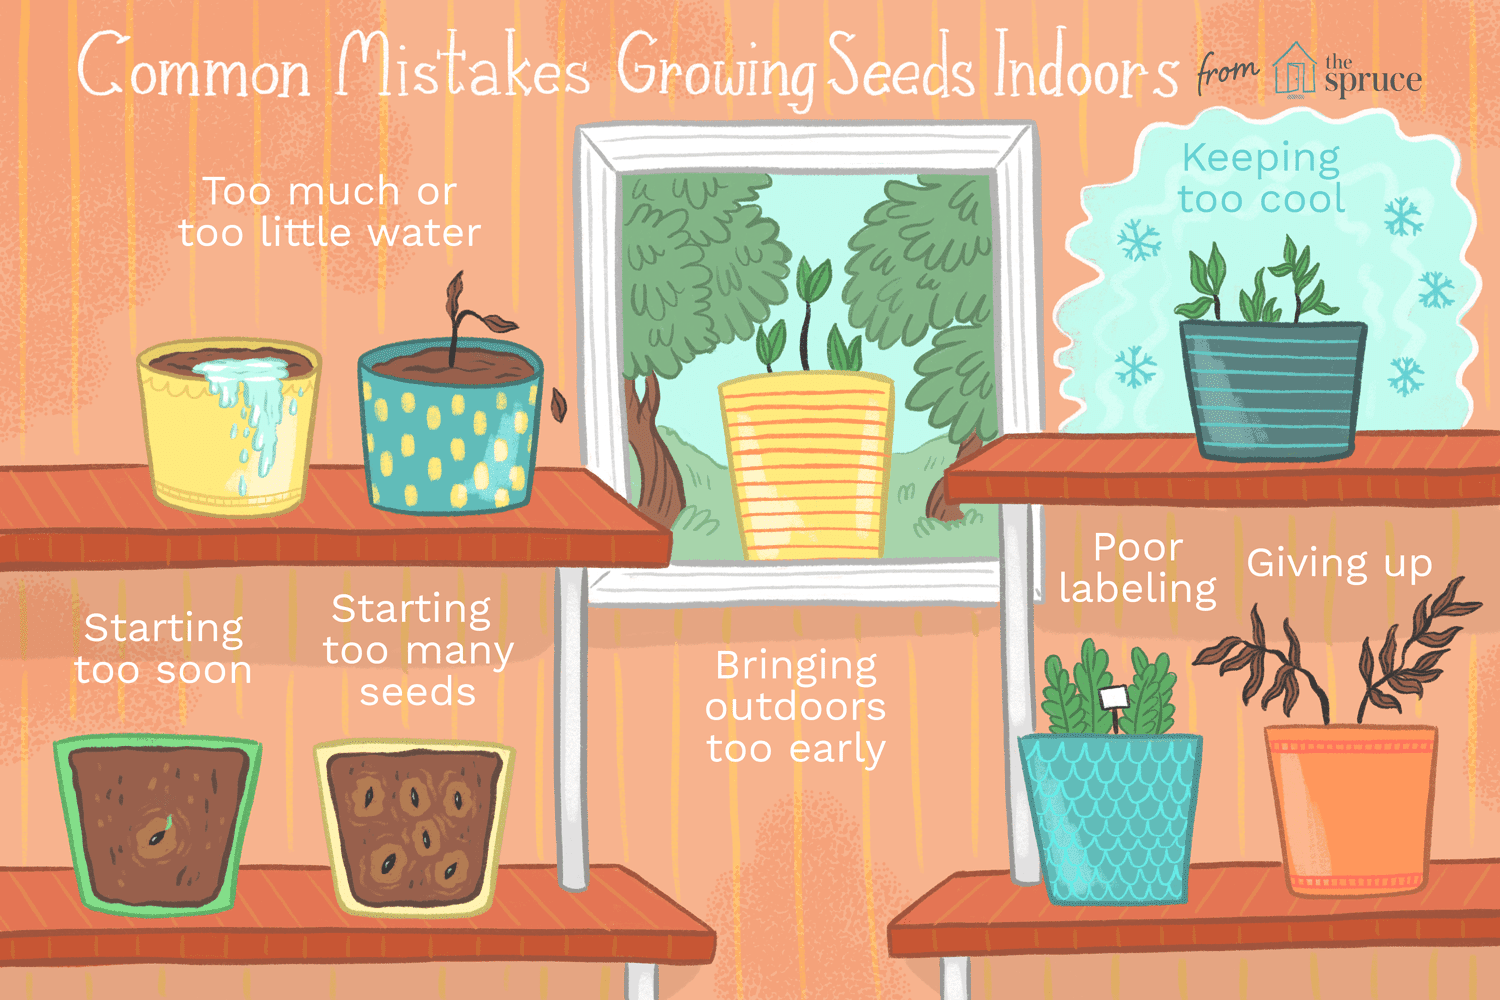 Common Mistakes Made While Growing Seeds Indoors